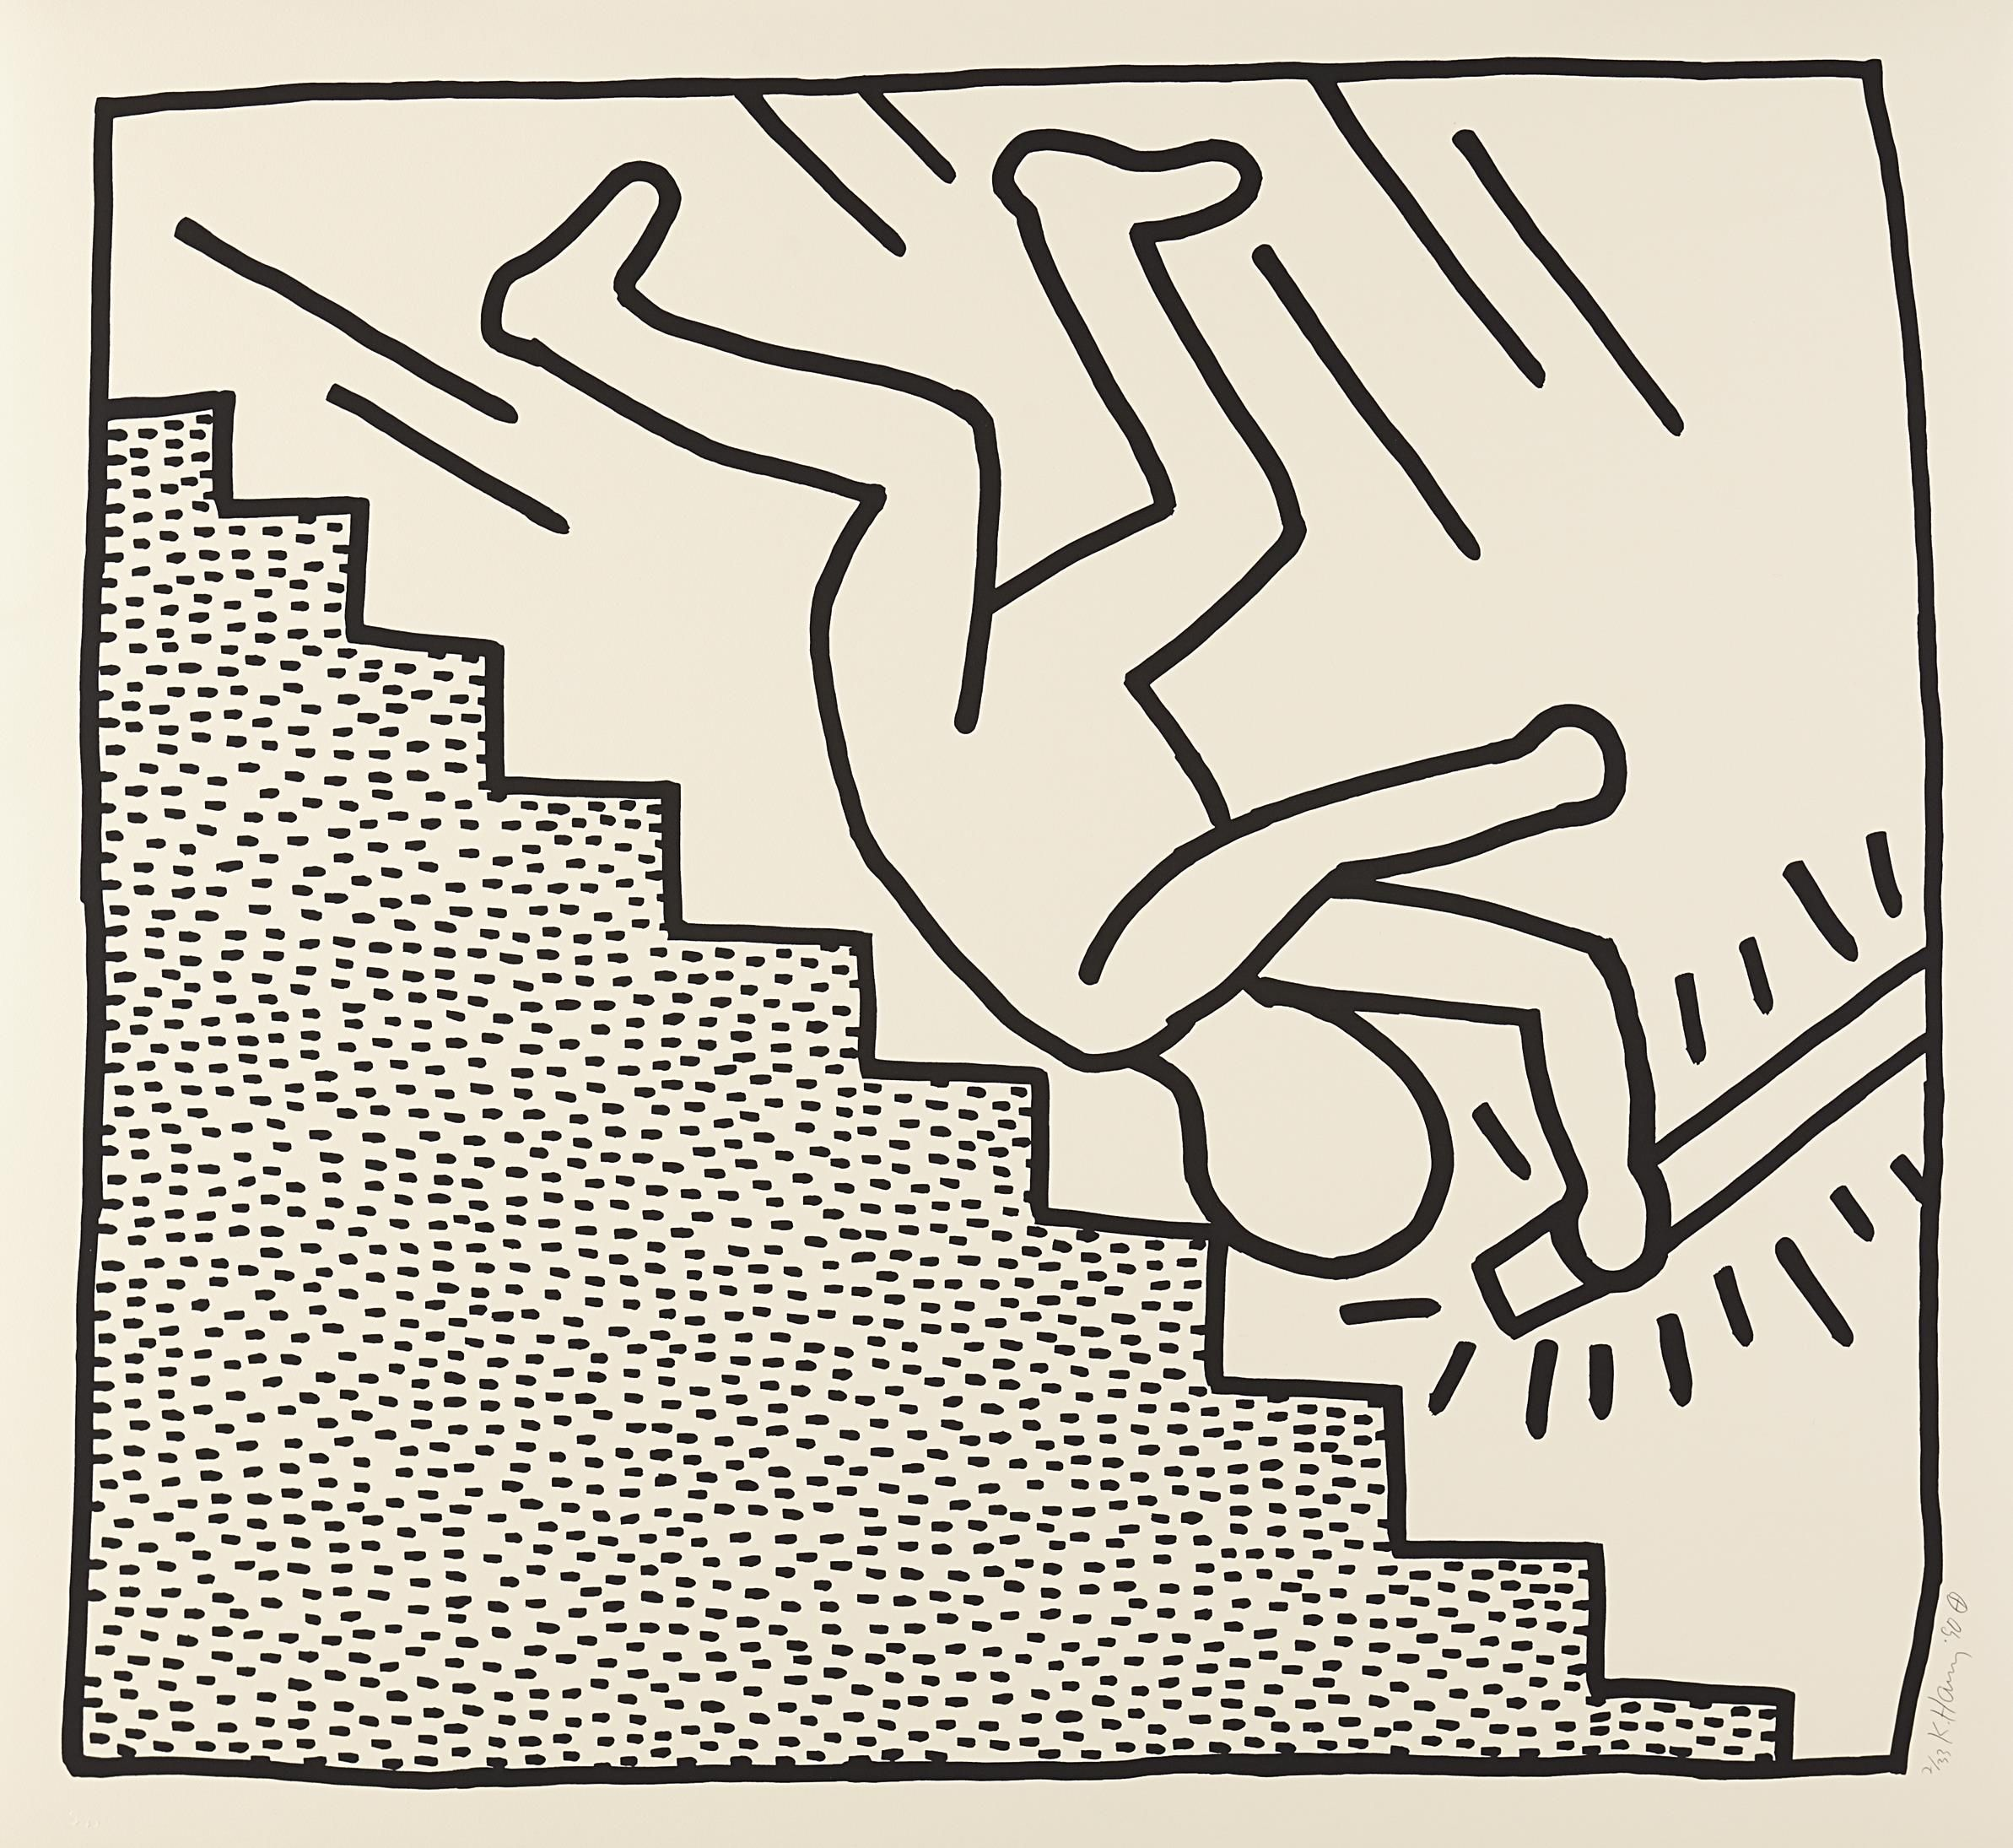 Keith haring blueprint drawing 16 1990 style me pretty keith haring blueprint drawing 16 1990 malvernweather Images